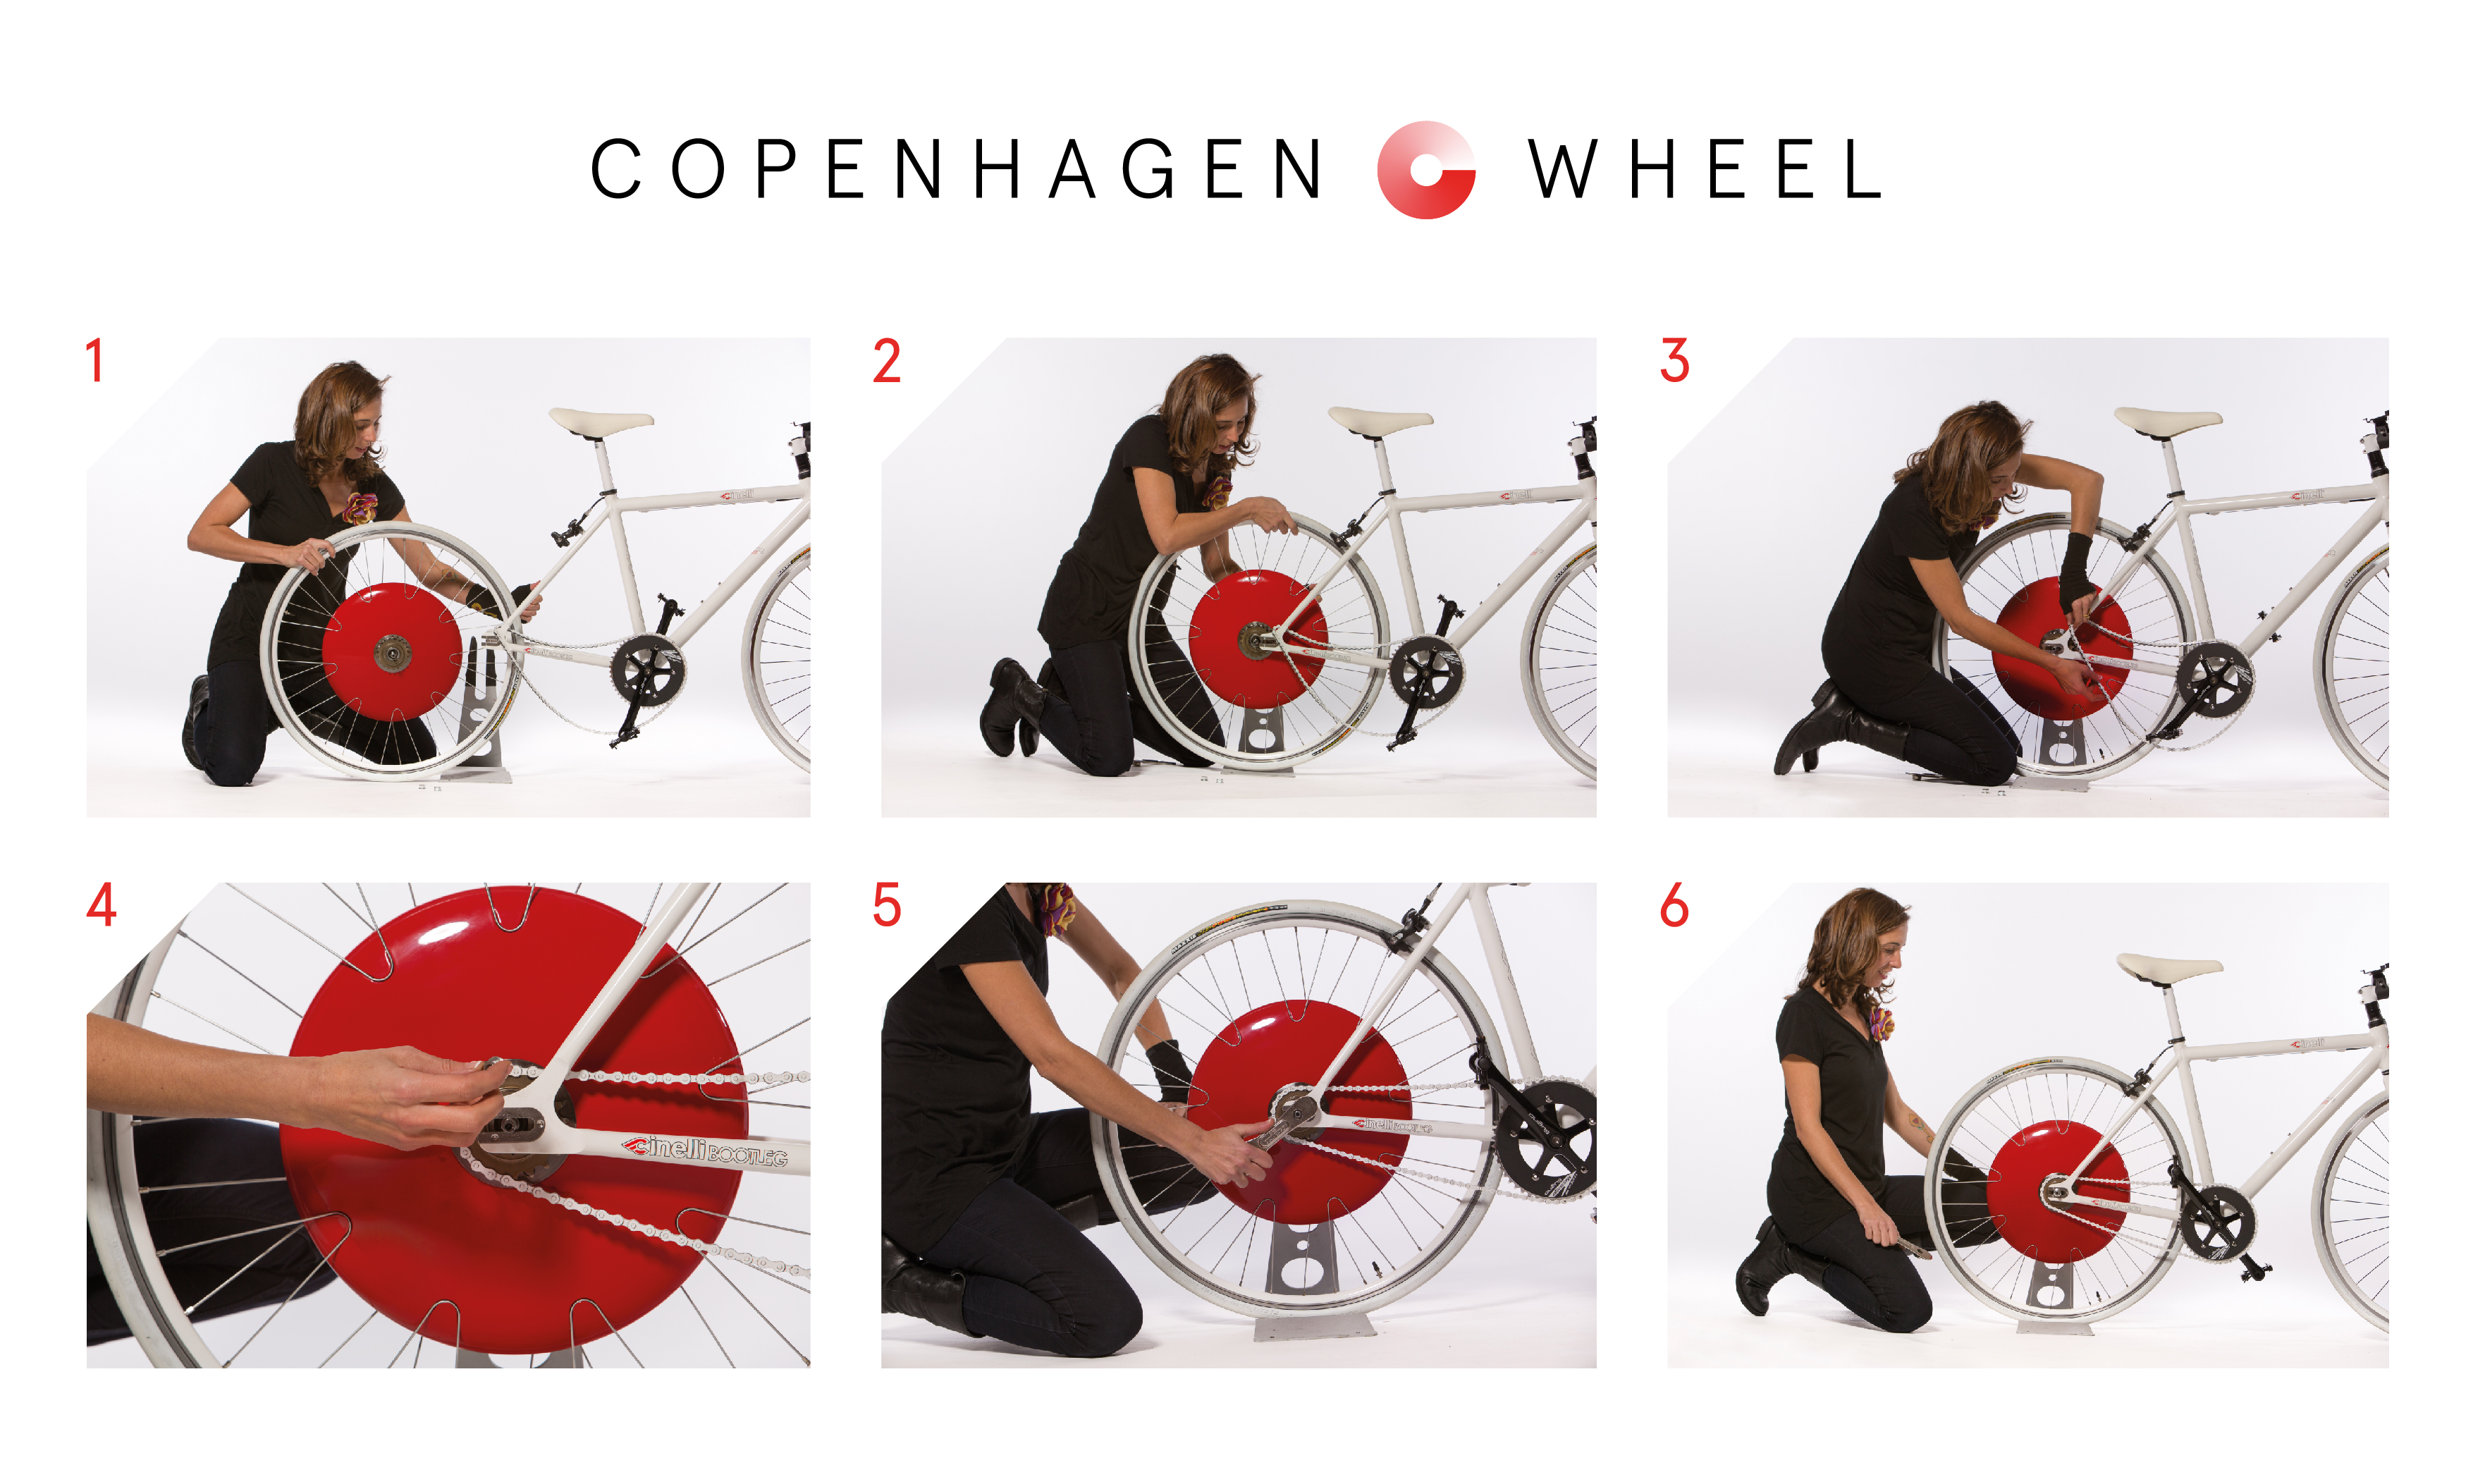 Copenhagen Wheel assembly